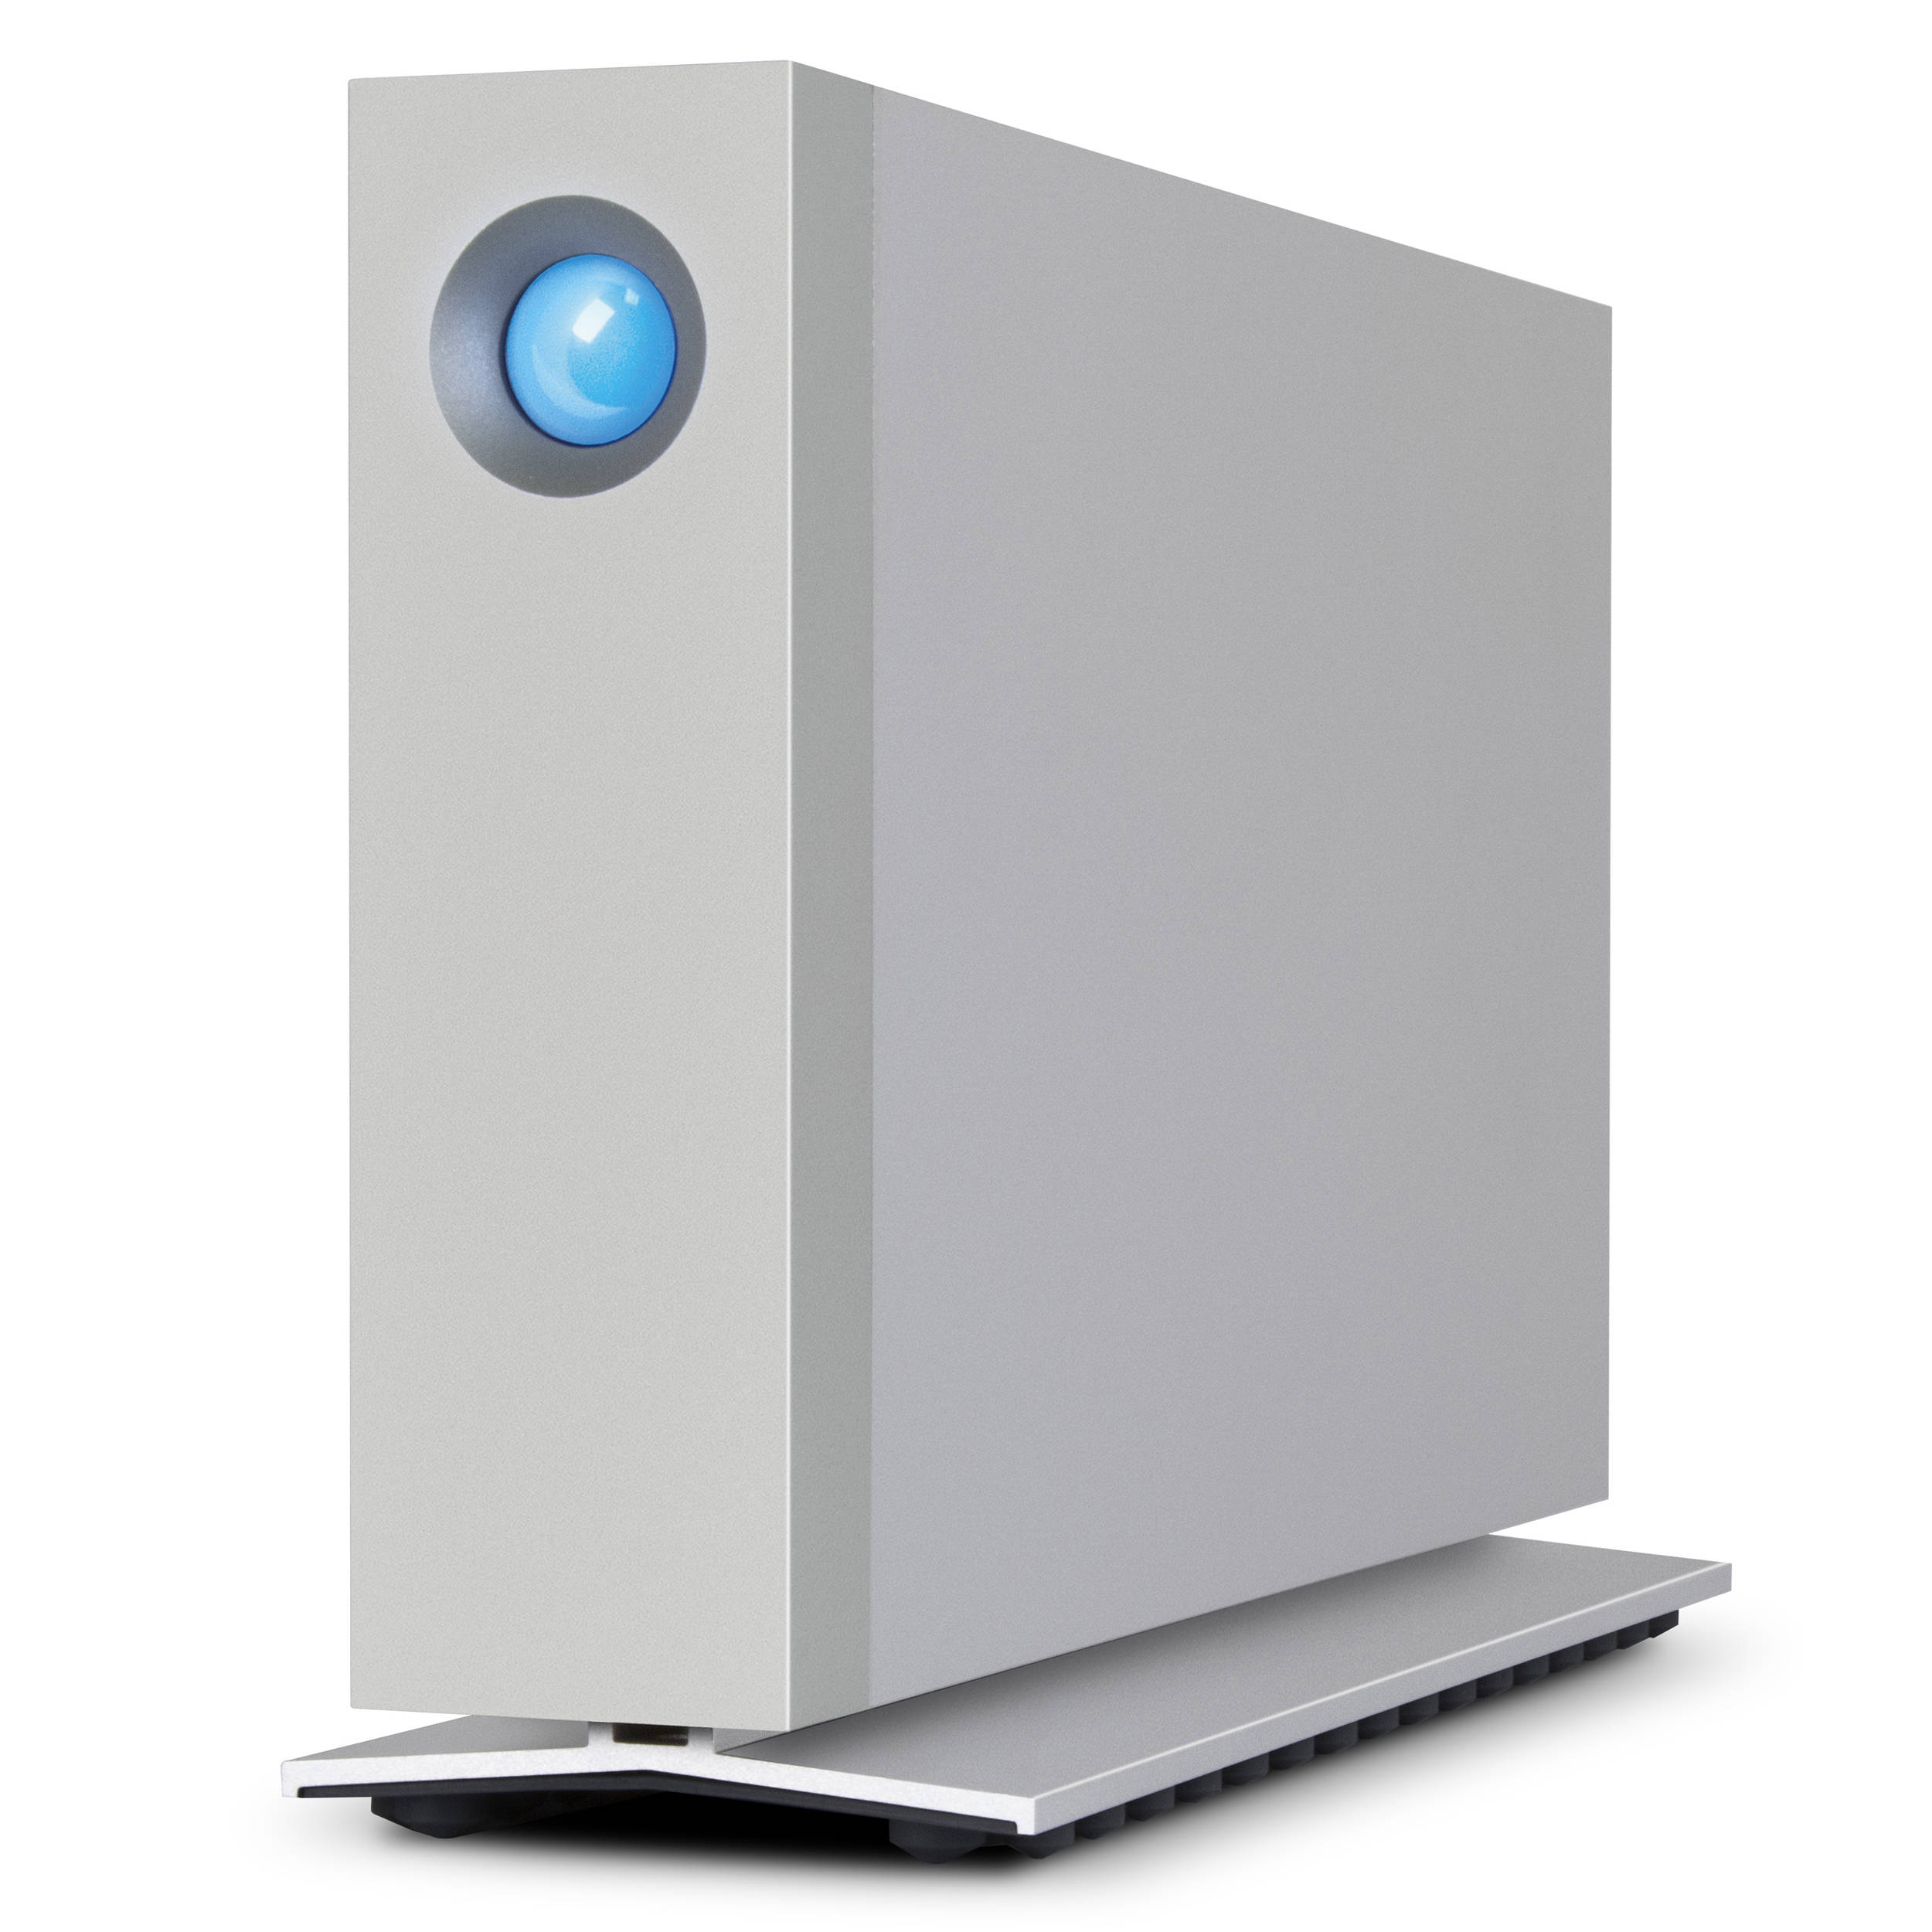 LaCie 8TB d2 Thunderbolt 3 Desktop Drive Digital Media 8TB